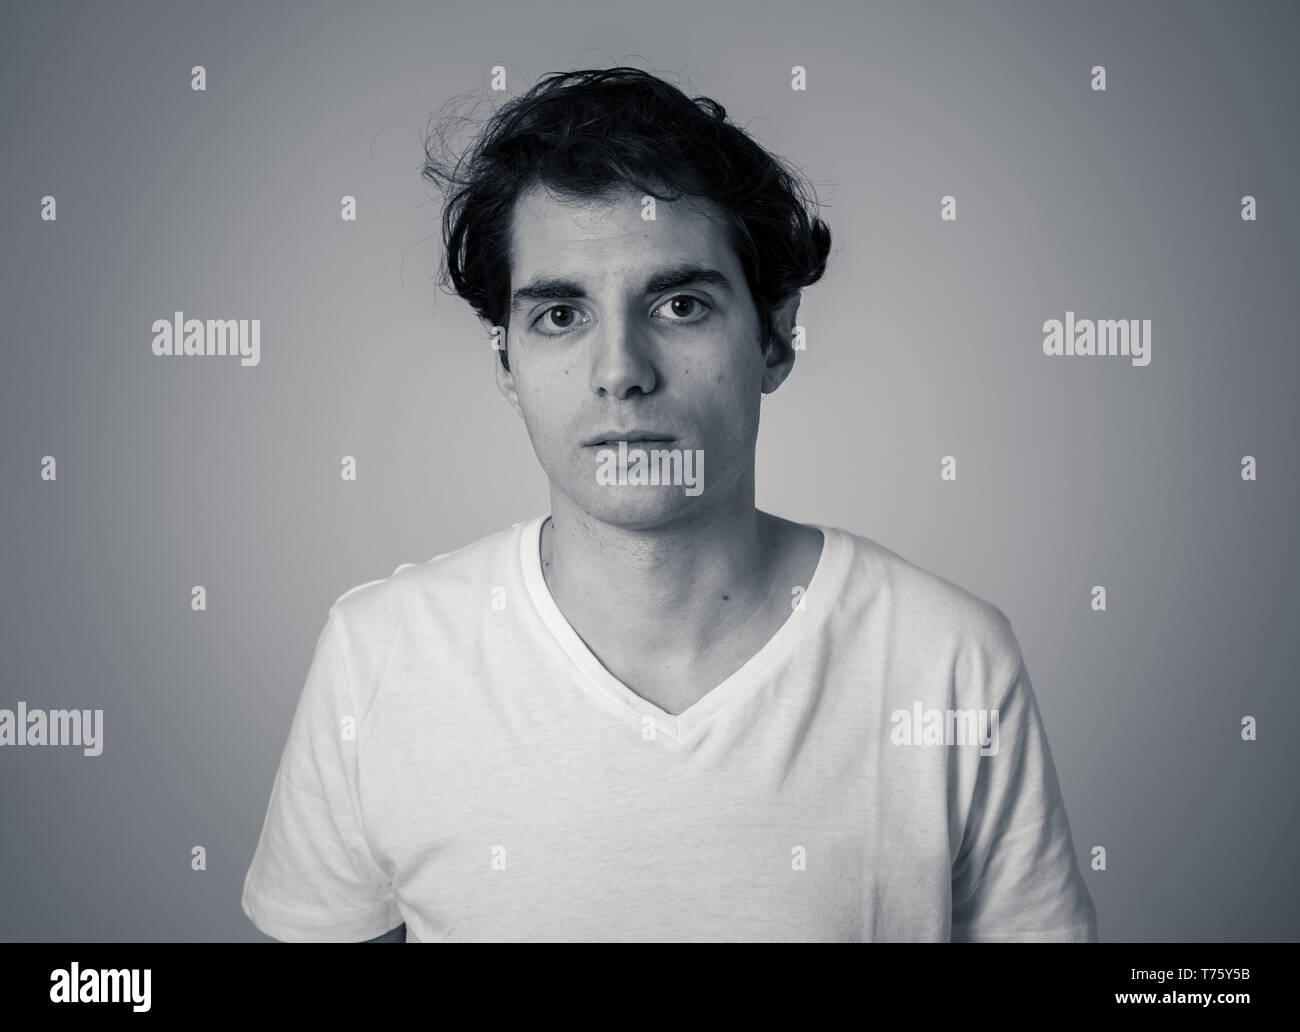 Black and white portrait of young caucasian male feeling furious. Looking displeased and annoyed . Studio shot. In people and facial expressions and n - Stock Image